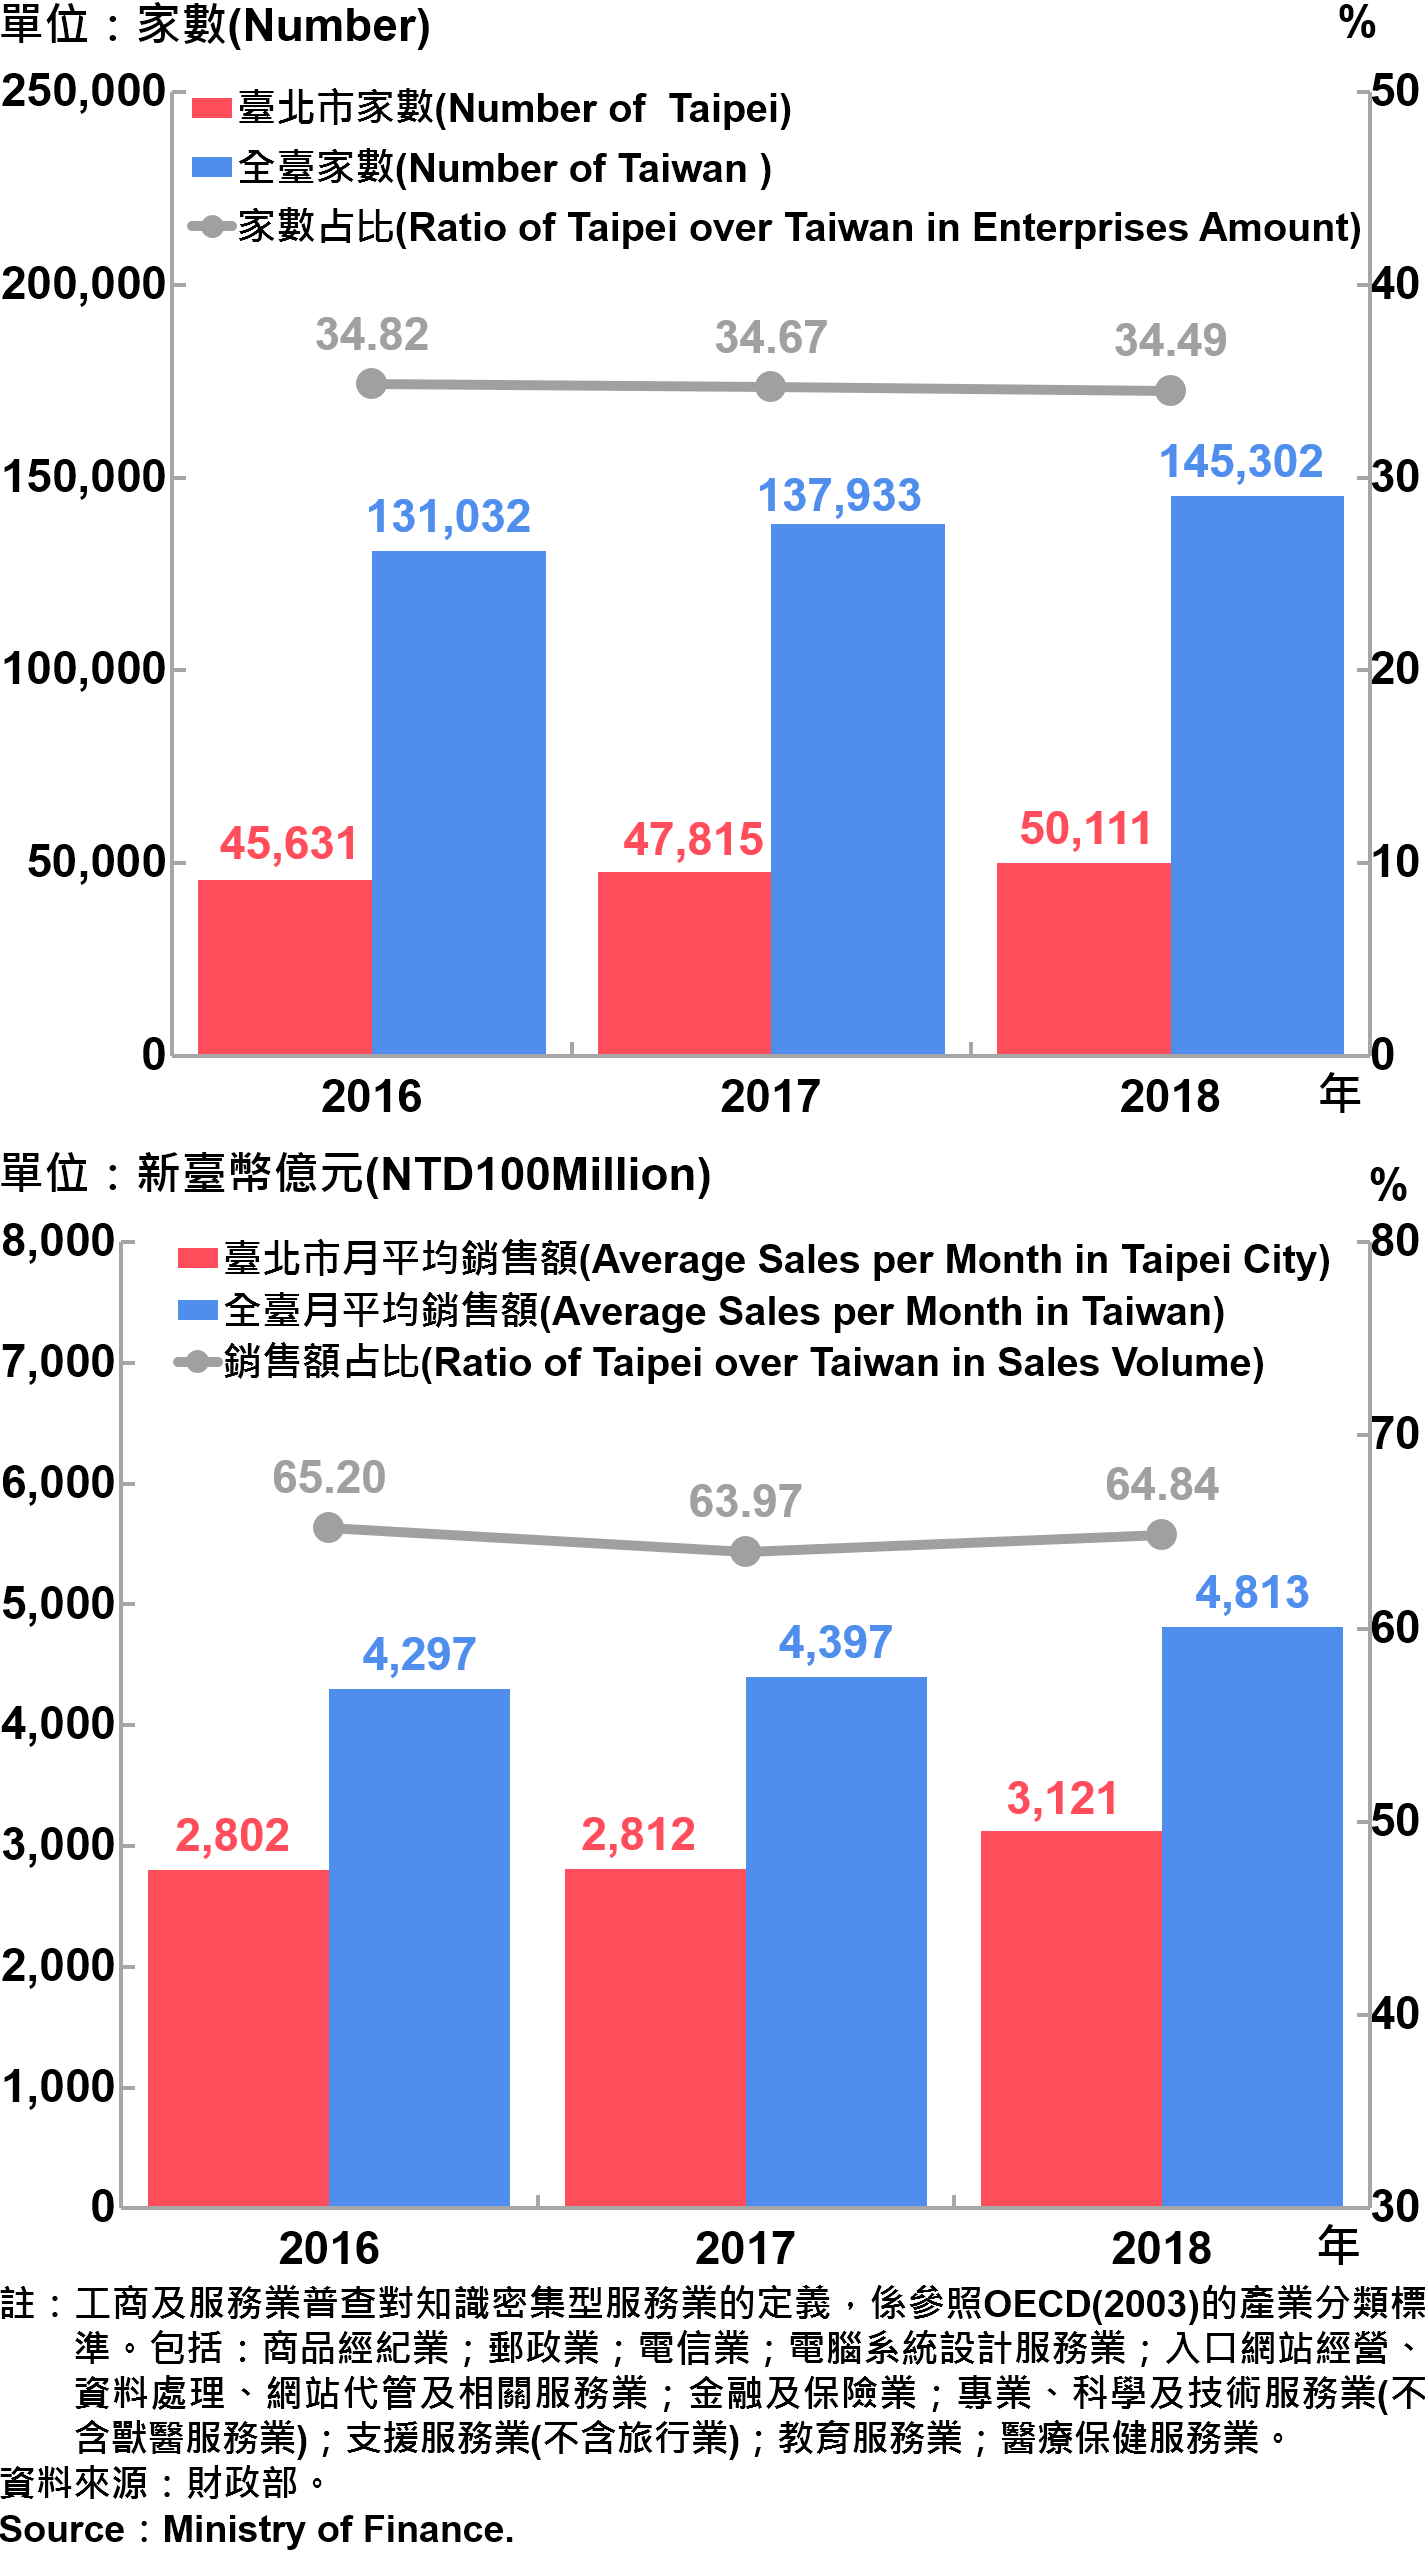 臺北市知識密集型服務業之家數及銷售額—2018 Statistics Knowledge Intensive Service Industry in Taipei City—2018